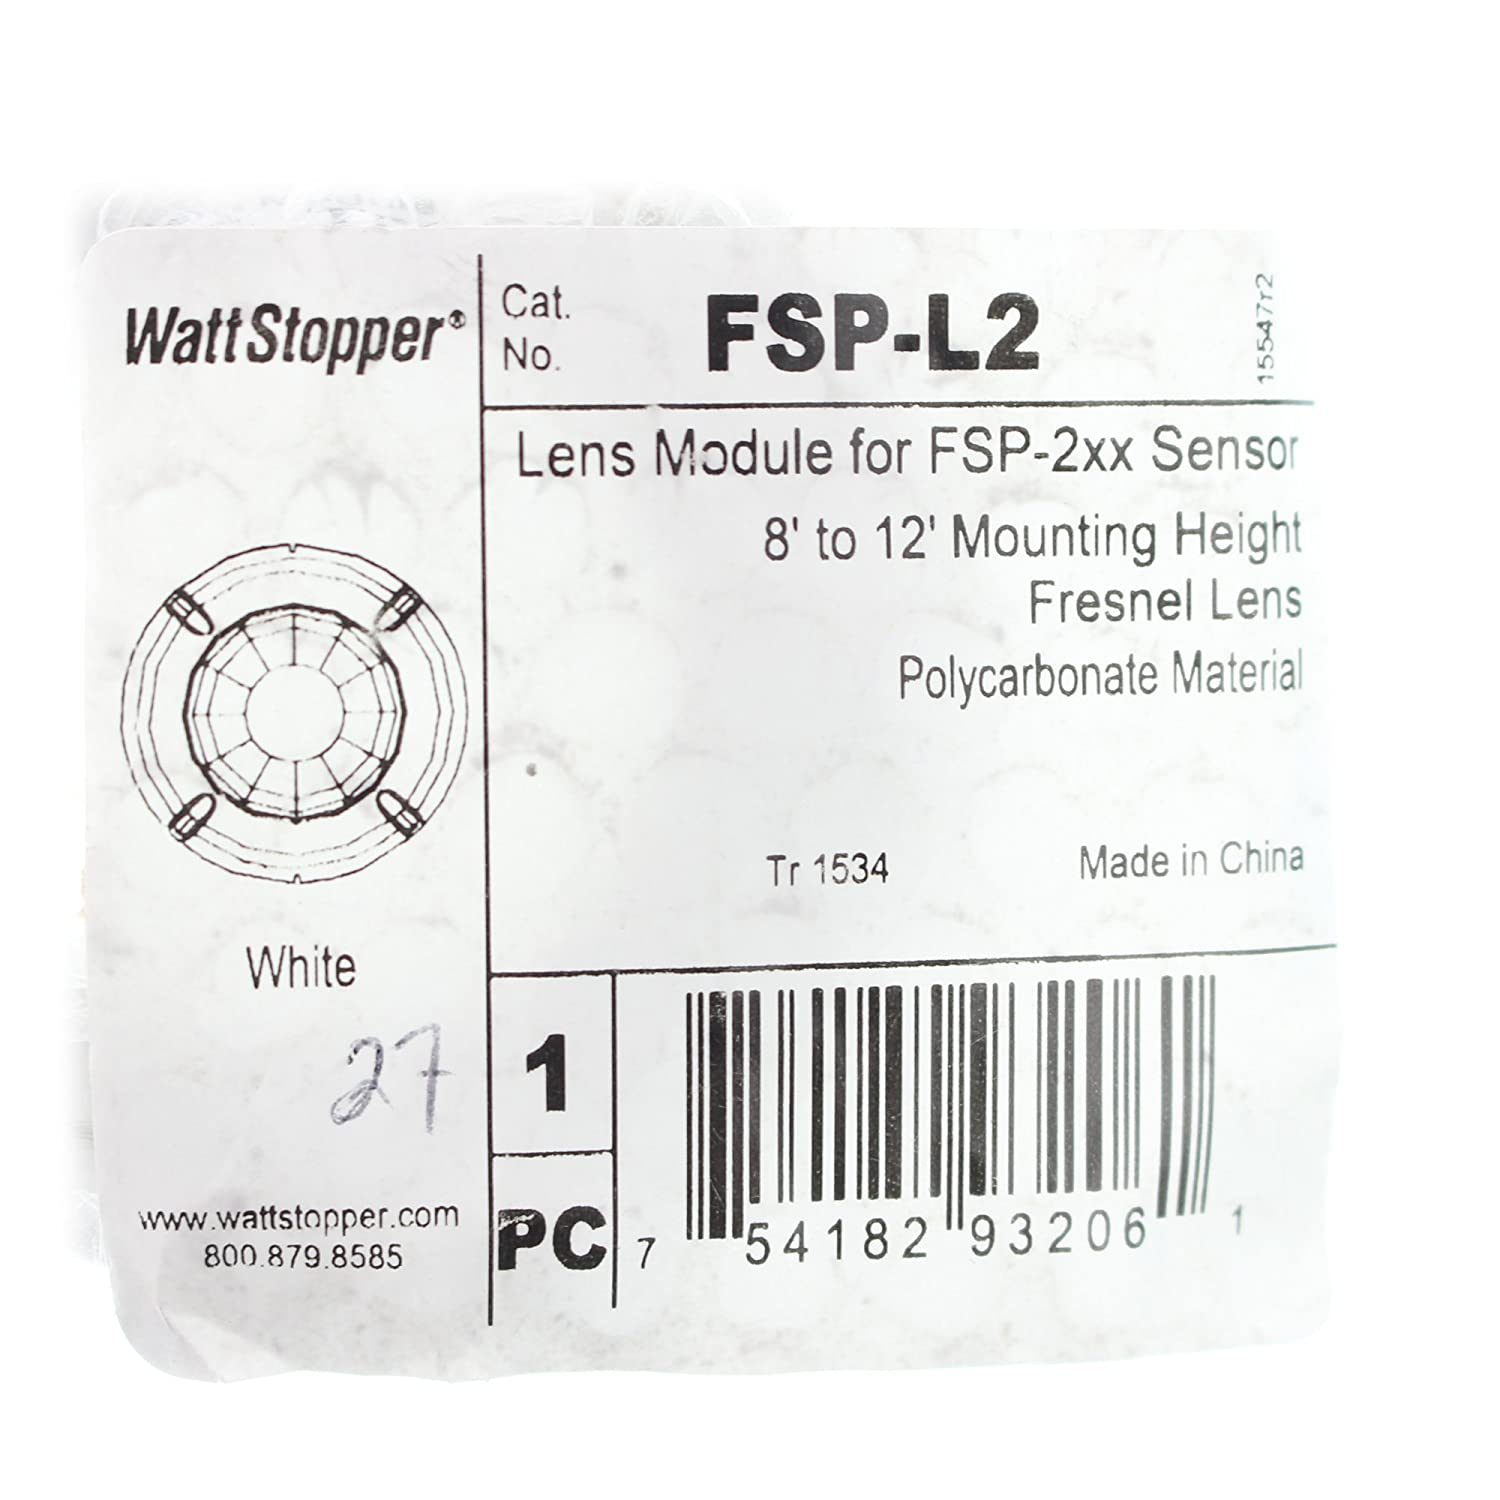 Amazon.com : Watt Stopper FSP-L2 Lens Module For Fsp-202 Fsp-212 Sensors, Fresnel Lens, White : Camera & Photo